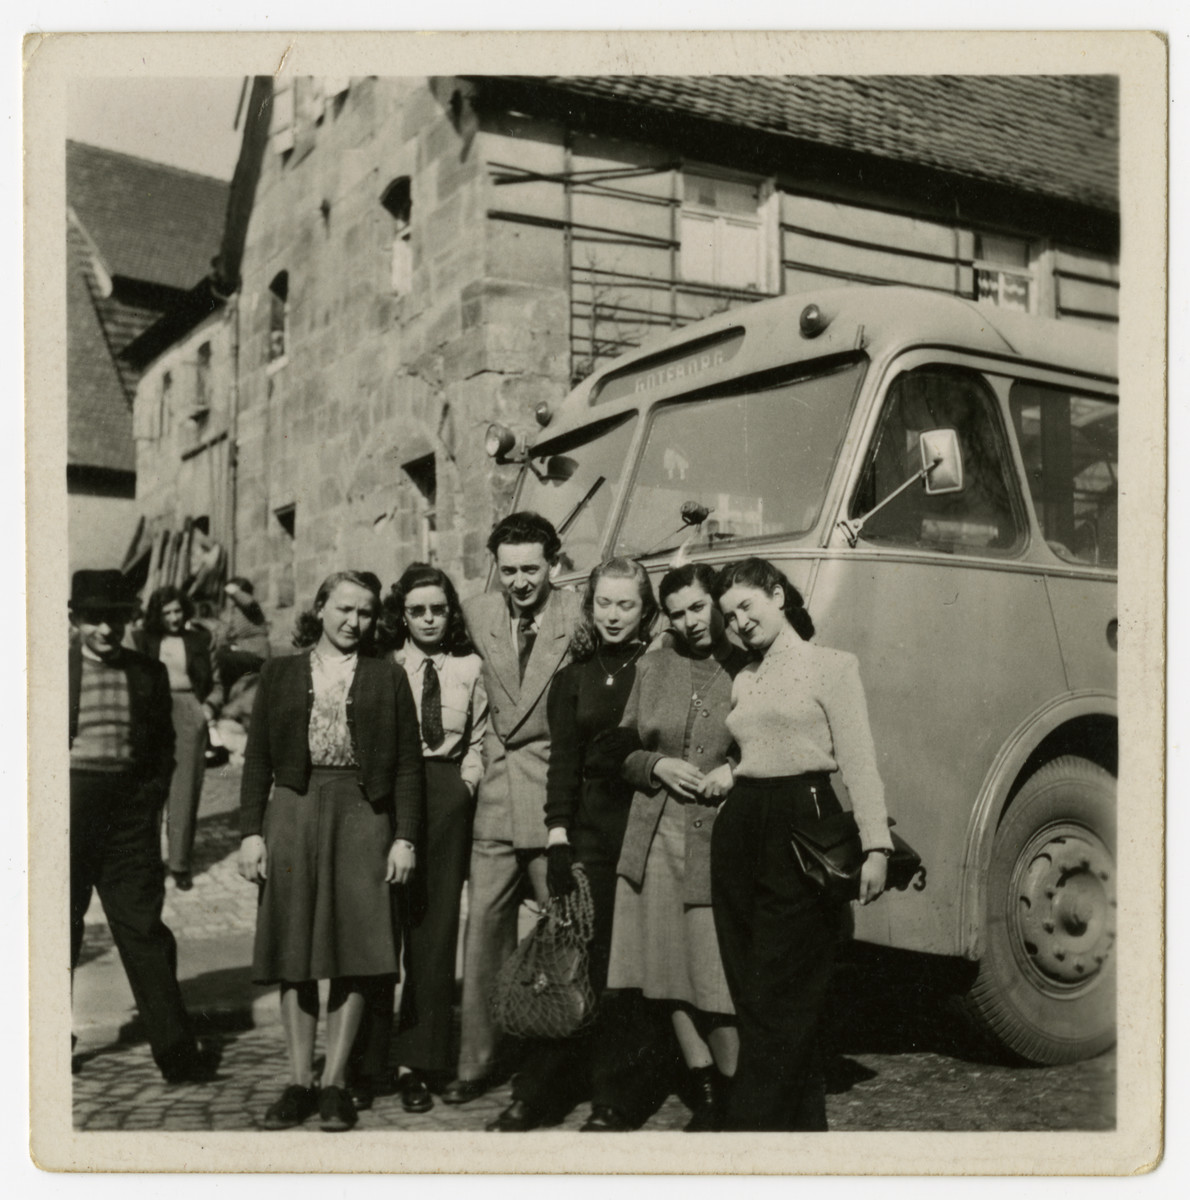 Jewish survivors from Czechoslovakia pose in front of their bus en route to Goteborg, Sweden.    From Goteborg they boarded a ship to the United States.  Paul Vjecsner pictured in the center.